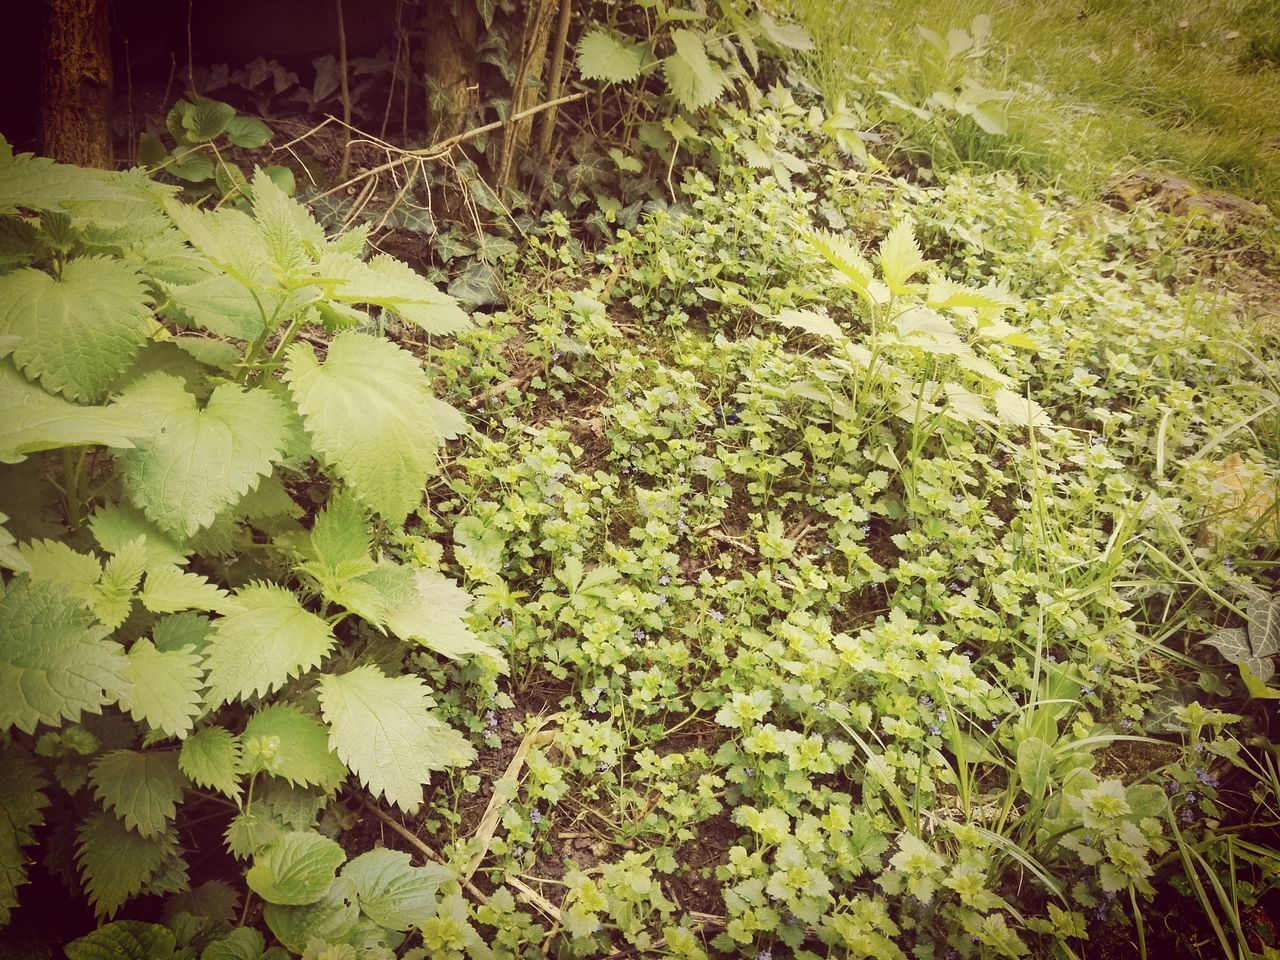 growth, plant, nature, green, leaf, no people, green color, tranquility, beauty in nature, day, outdoors, close-up, freshness